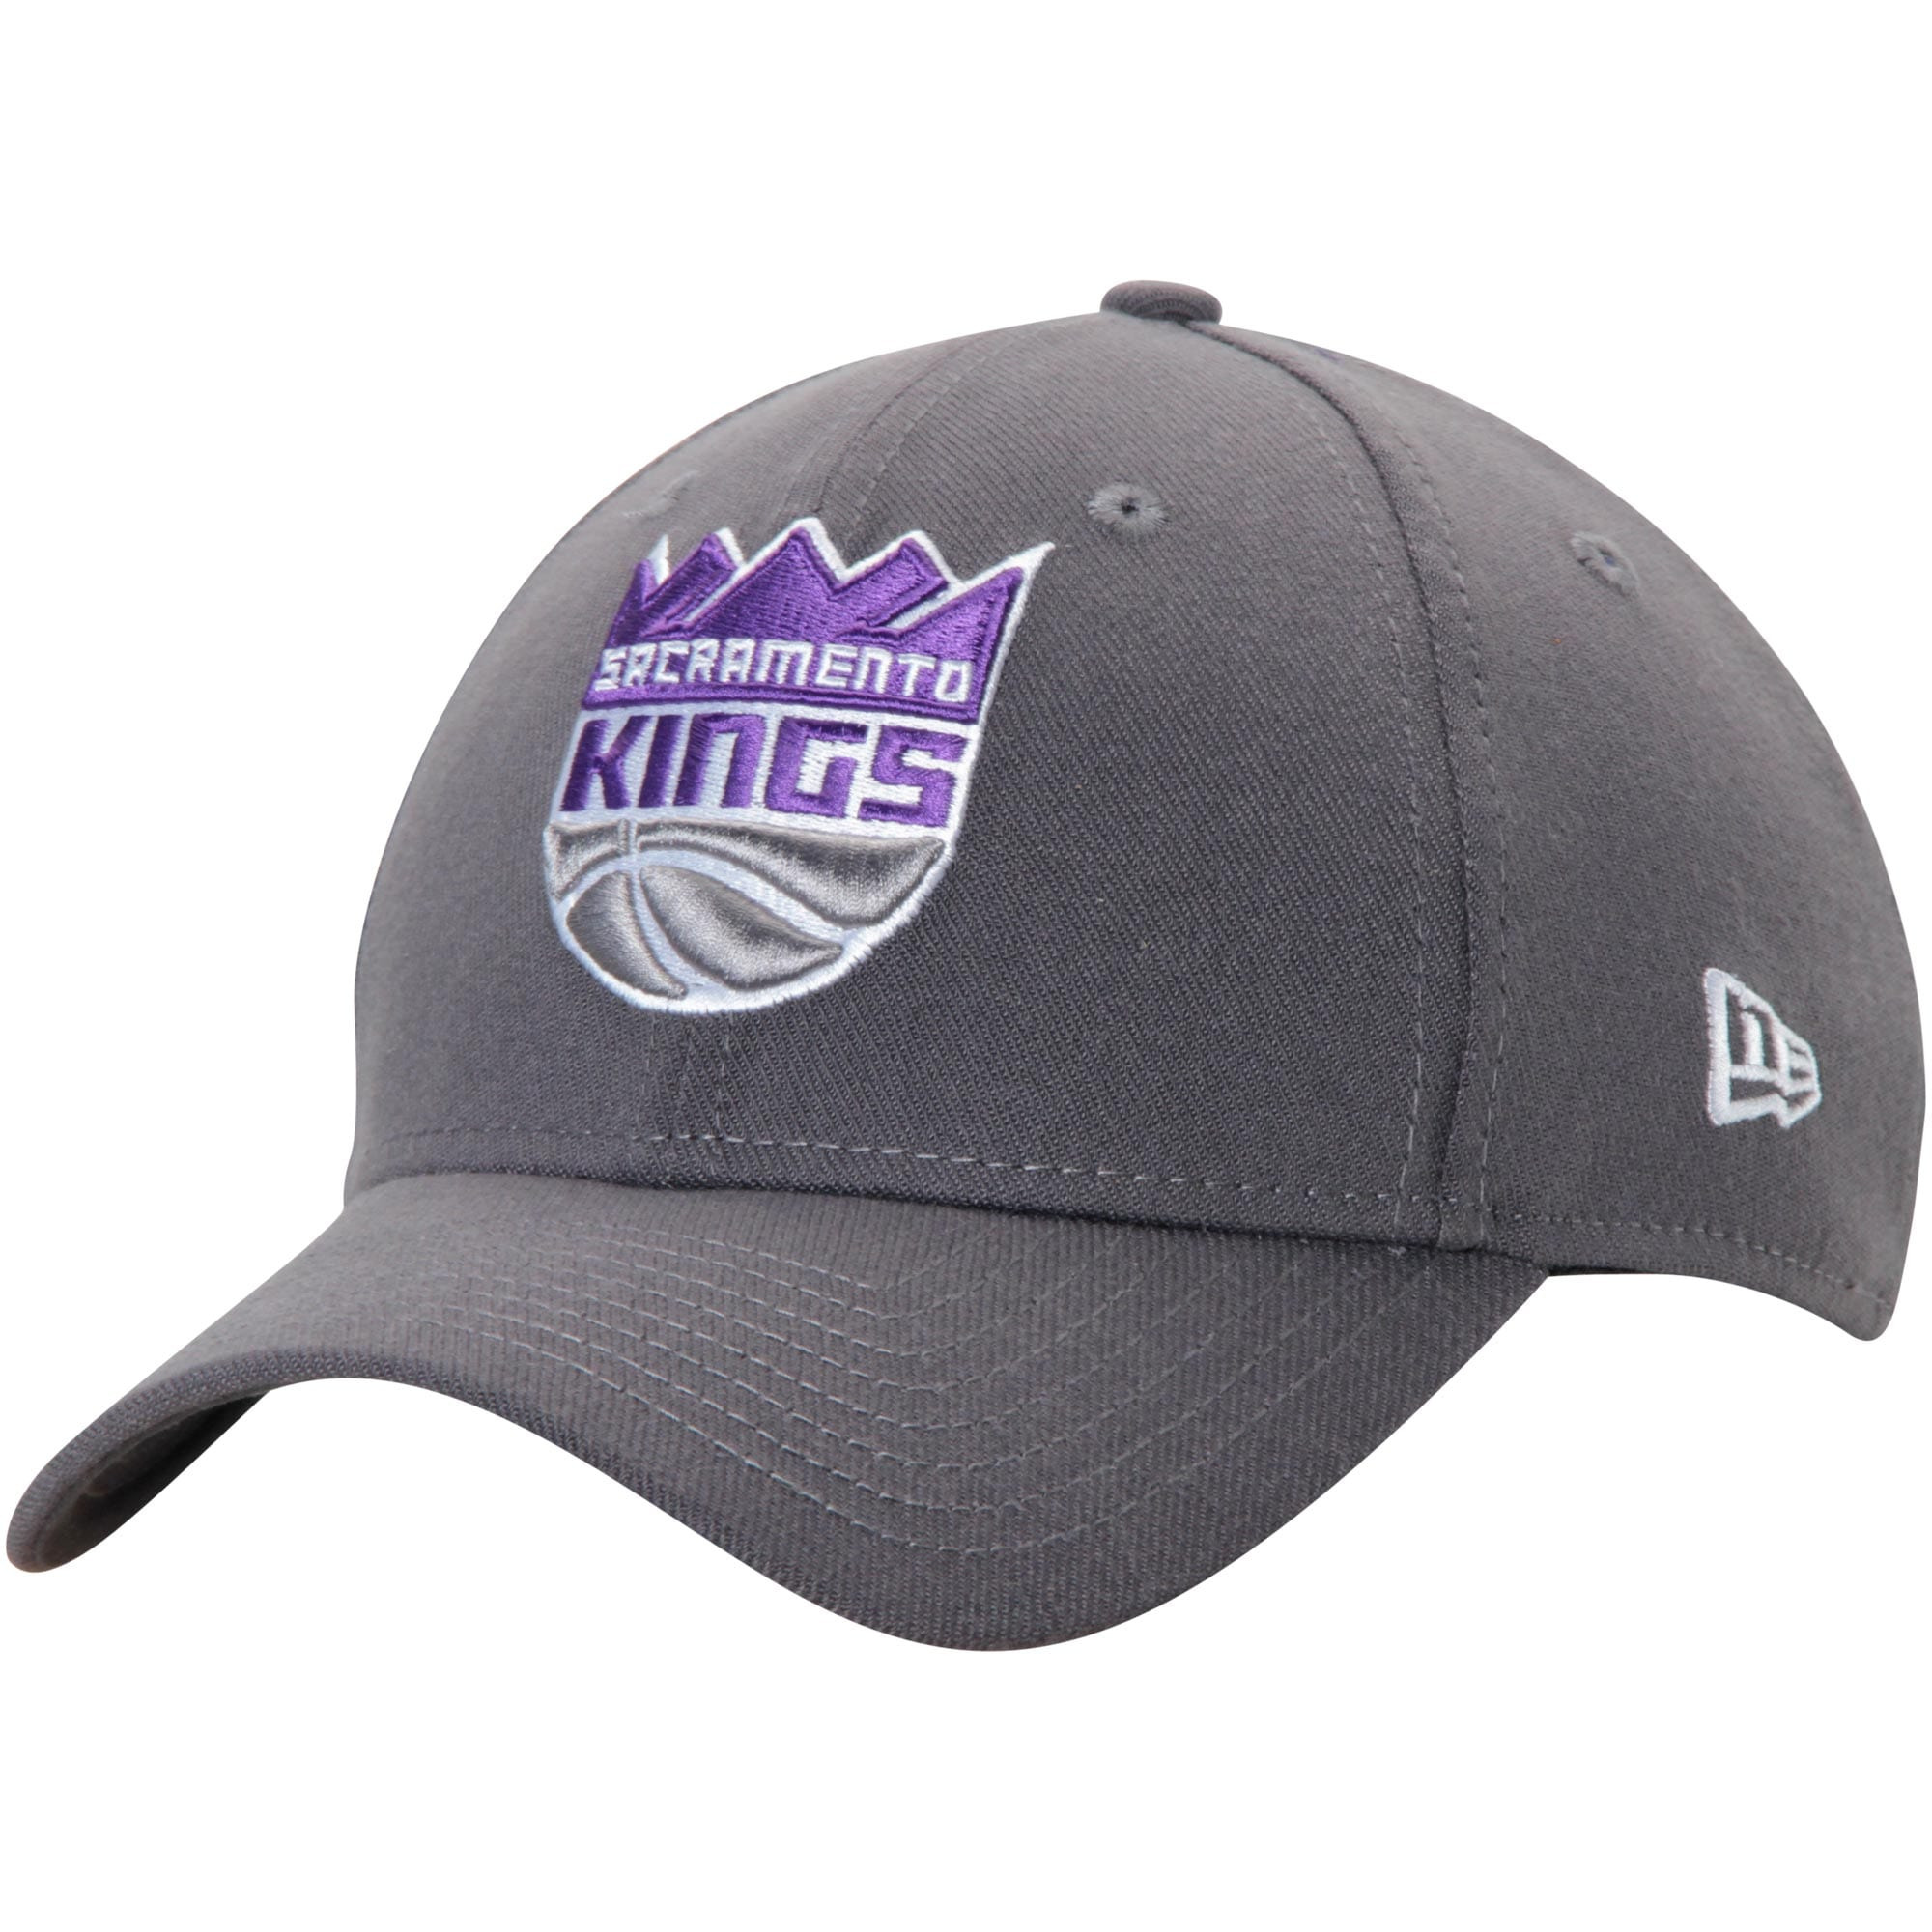 Sacramento Kings New Era Team Classic 39THIRTY Flex Hat - Charcoal